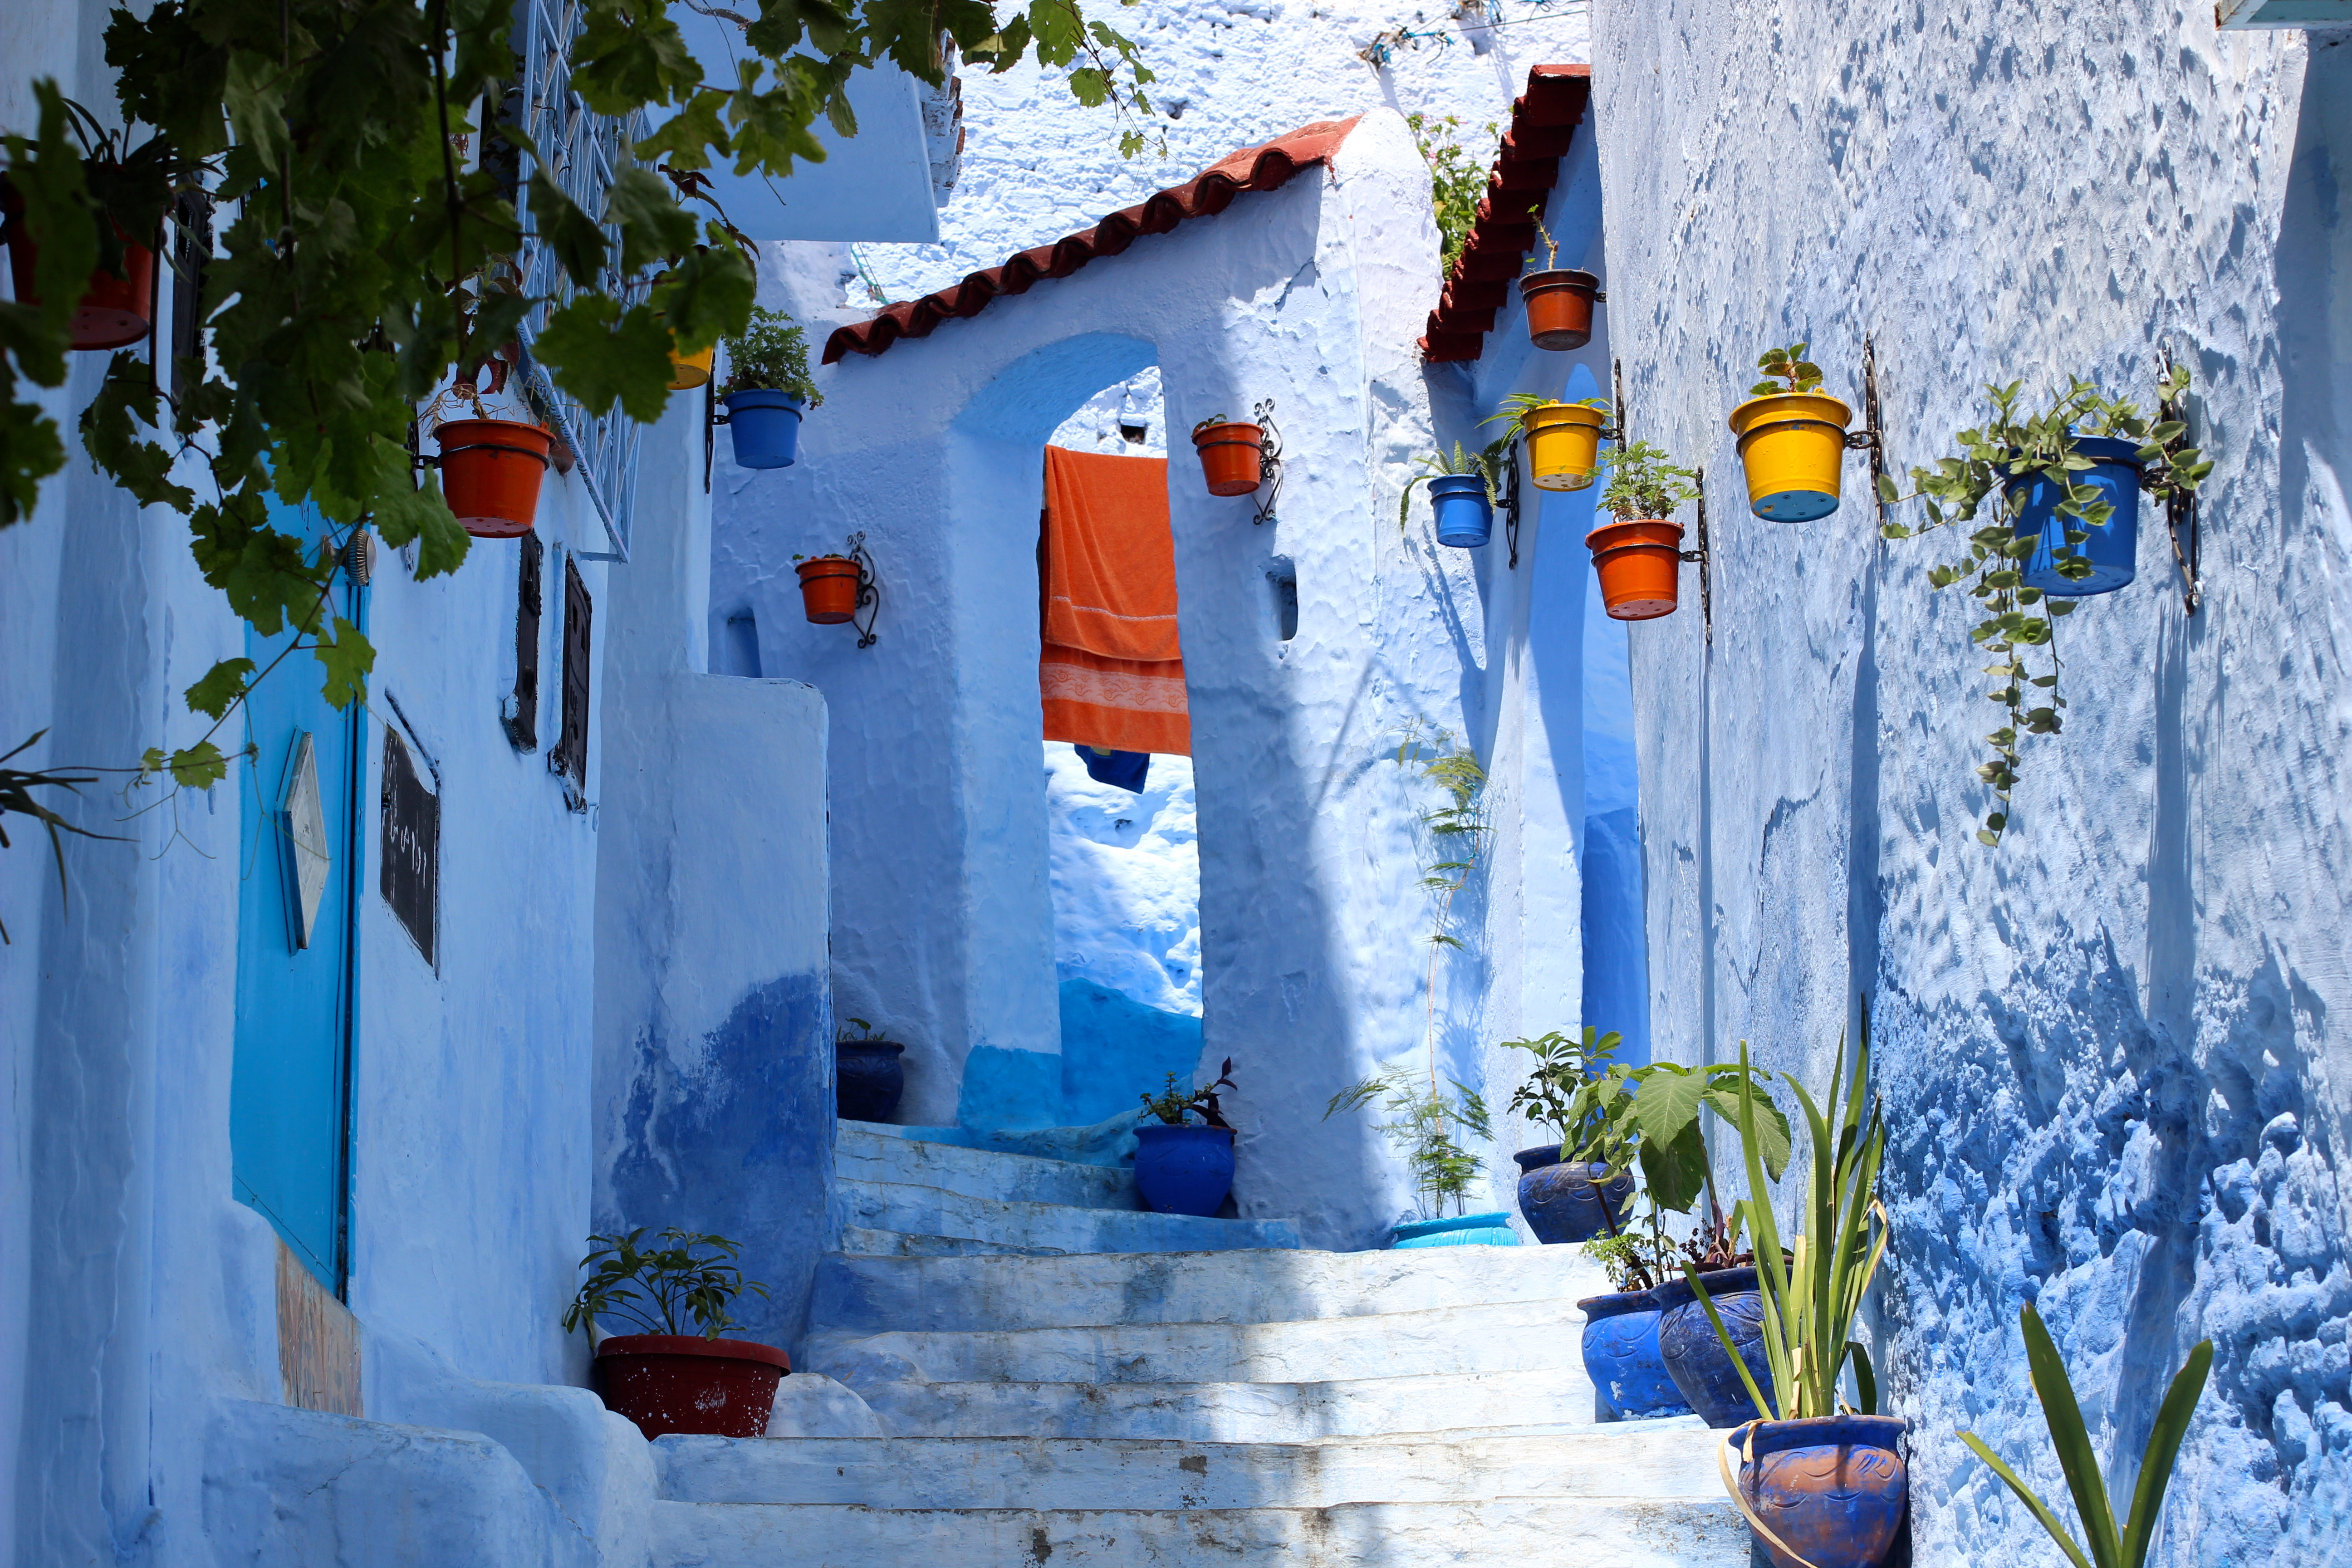 Chefchaouen Morocco  city images : Chefchaouen, Morocco III | Sarvodaya